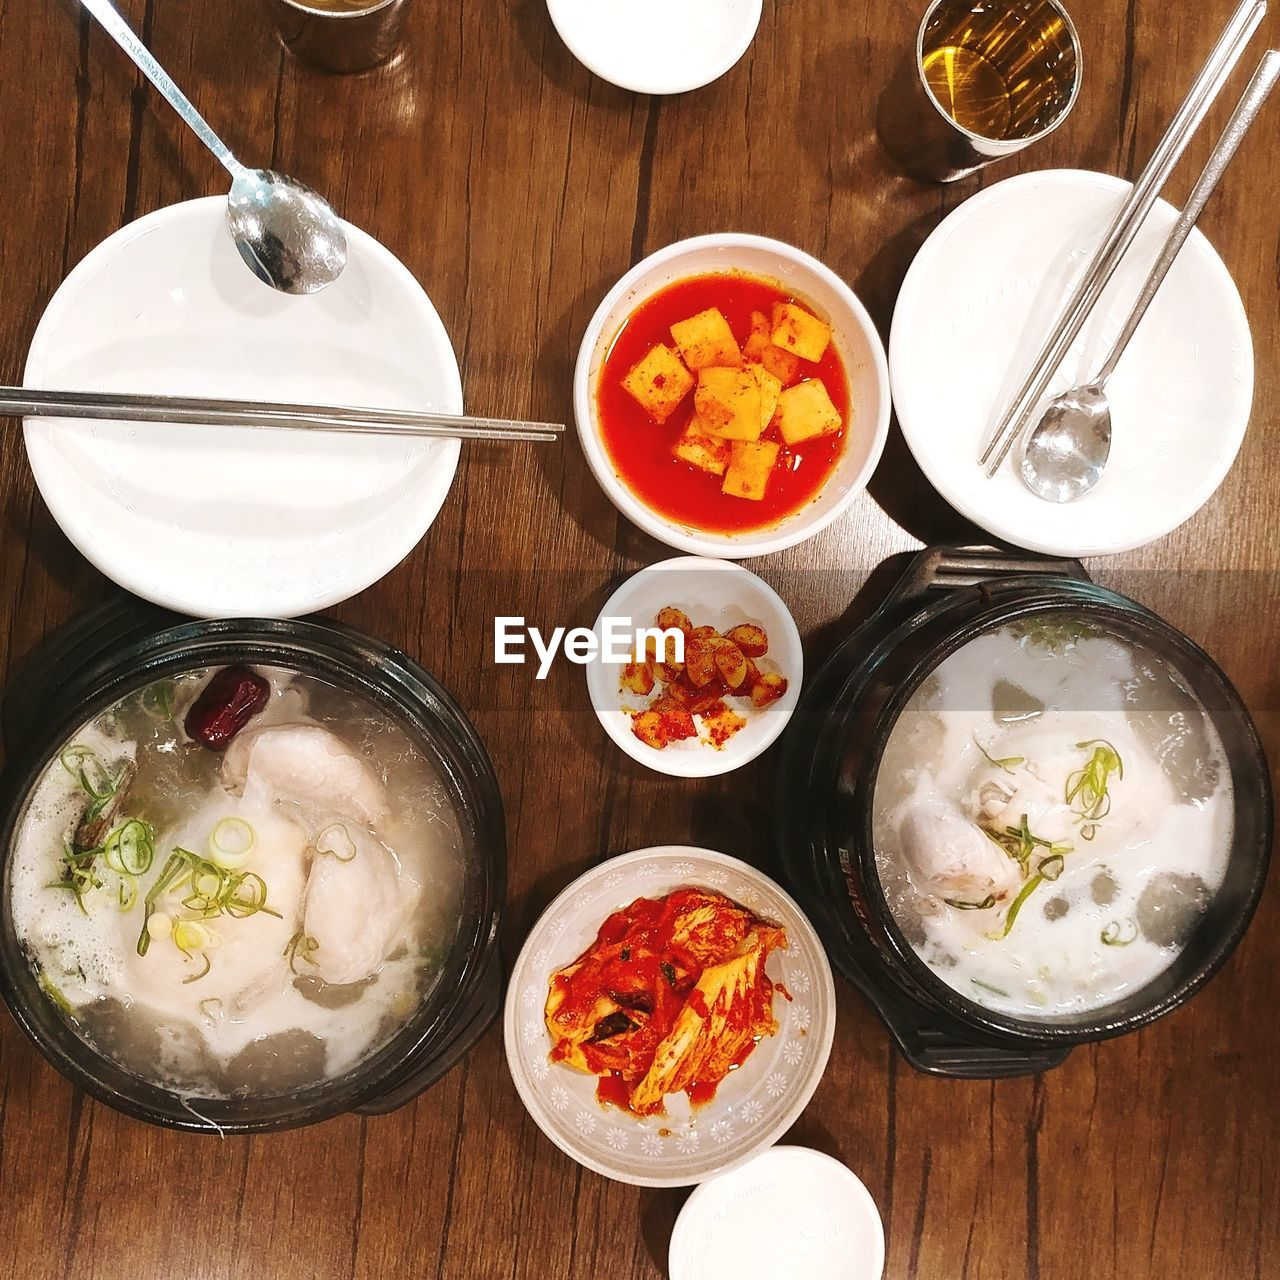 food and drink, food, table, freshness, bowl, ready-to-eat, indoors, healthy eating, wellbeing, kitchen utensil, spoon, eating utensil, high angle view, still life, plate, no people, meal, directly above, wood - material, household equipment, glass, temptation